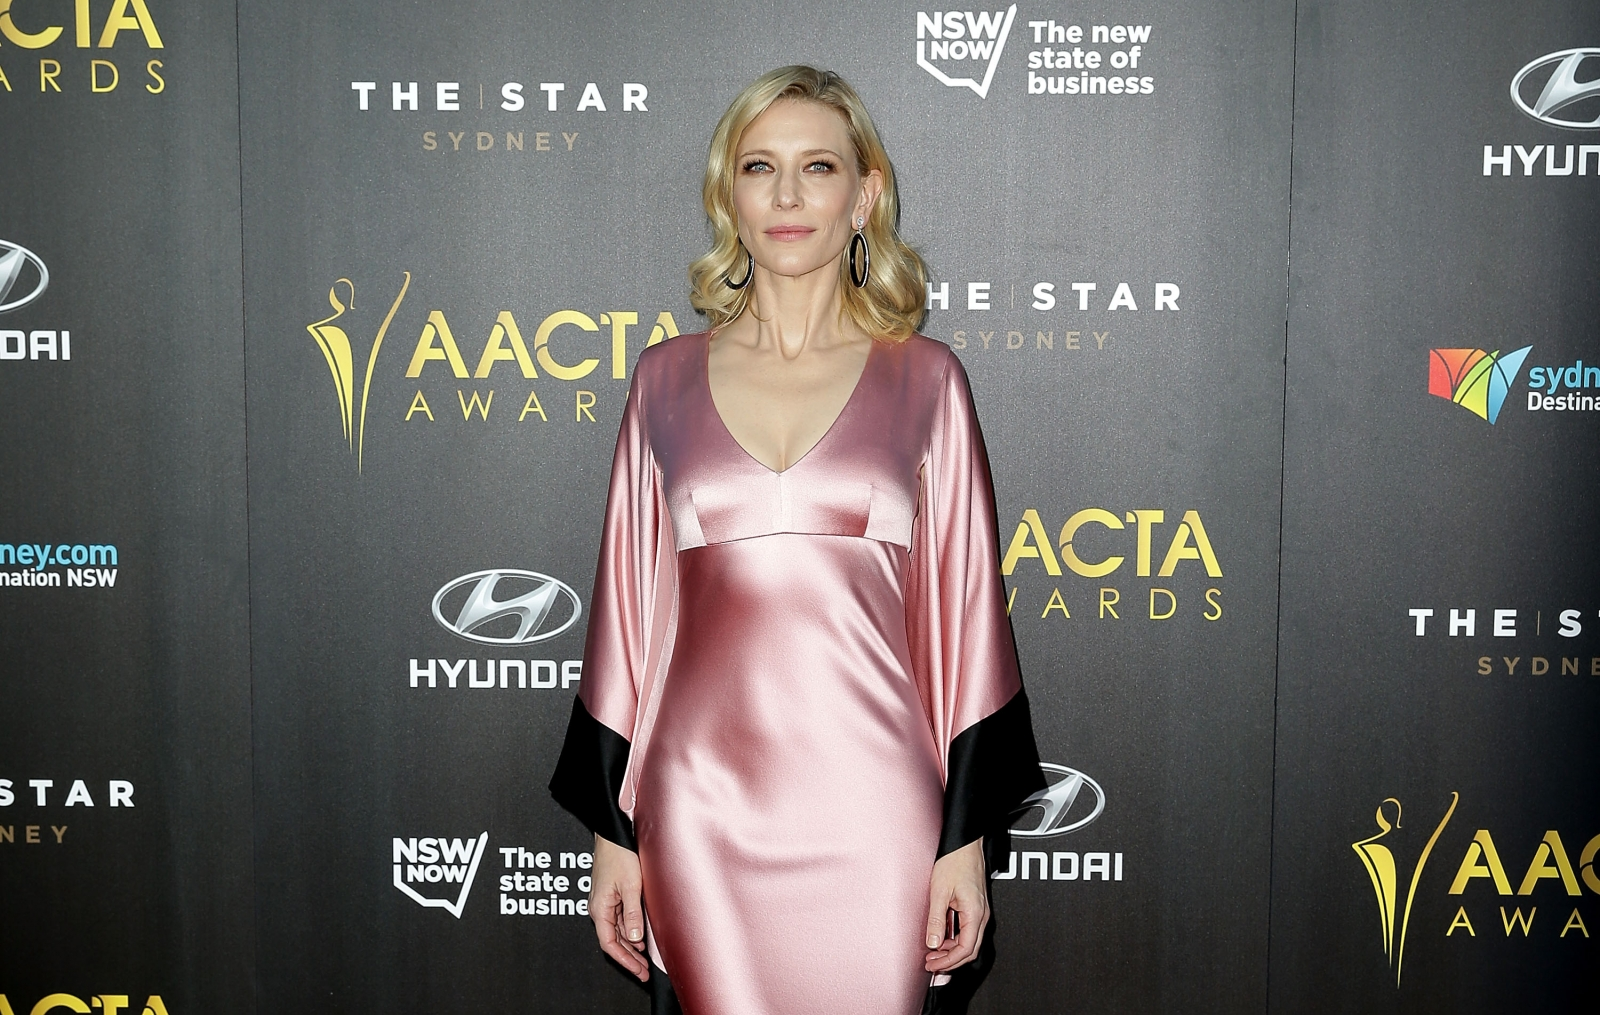 Aacta Awards 2015 Cate Blanchett Goes Knickerless For The